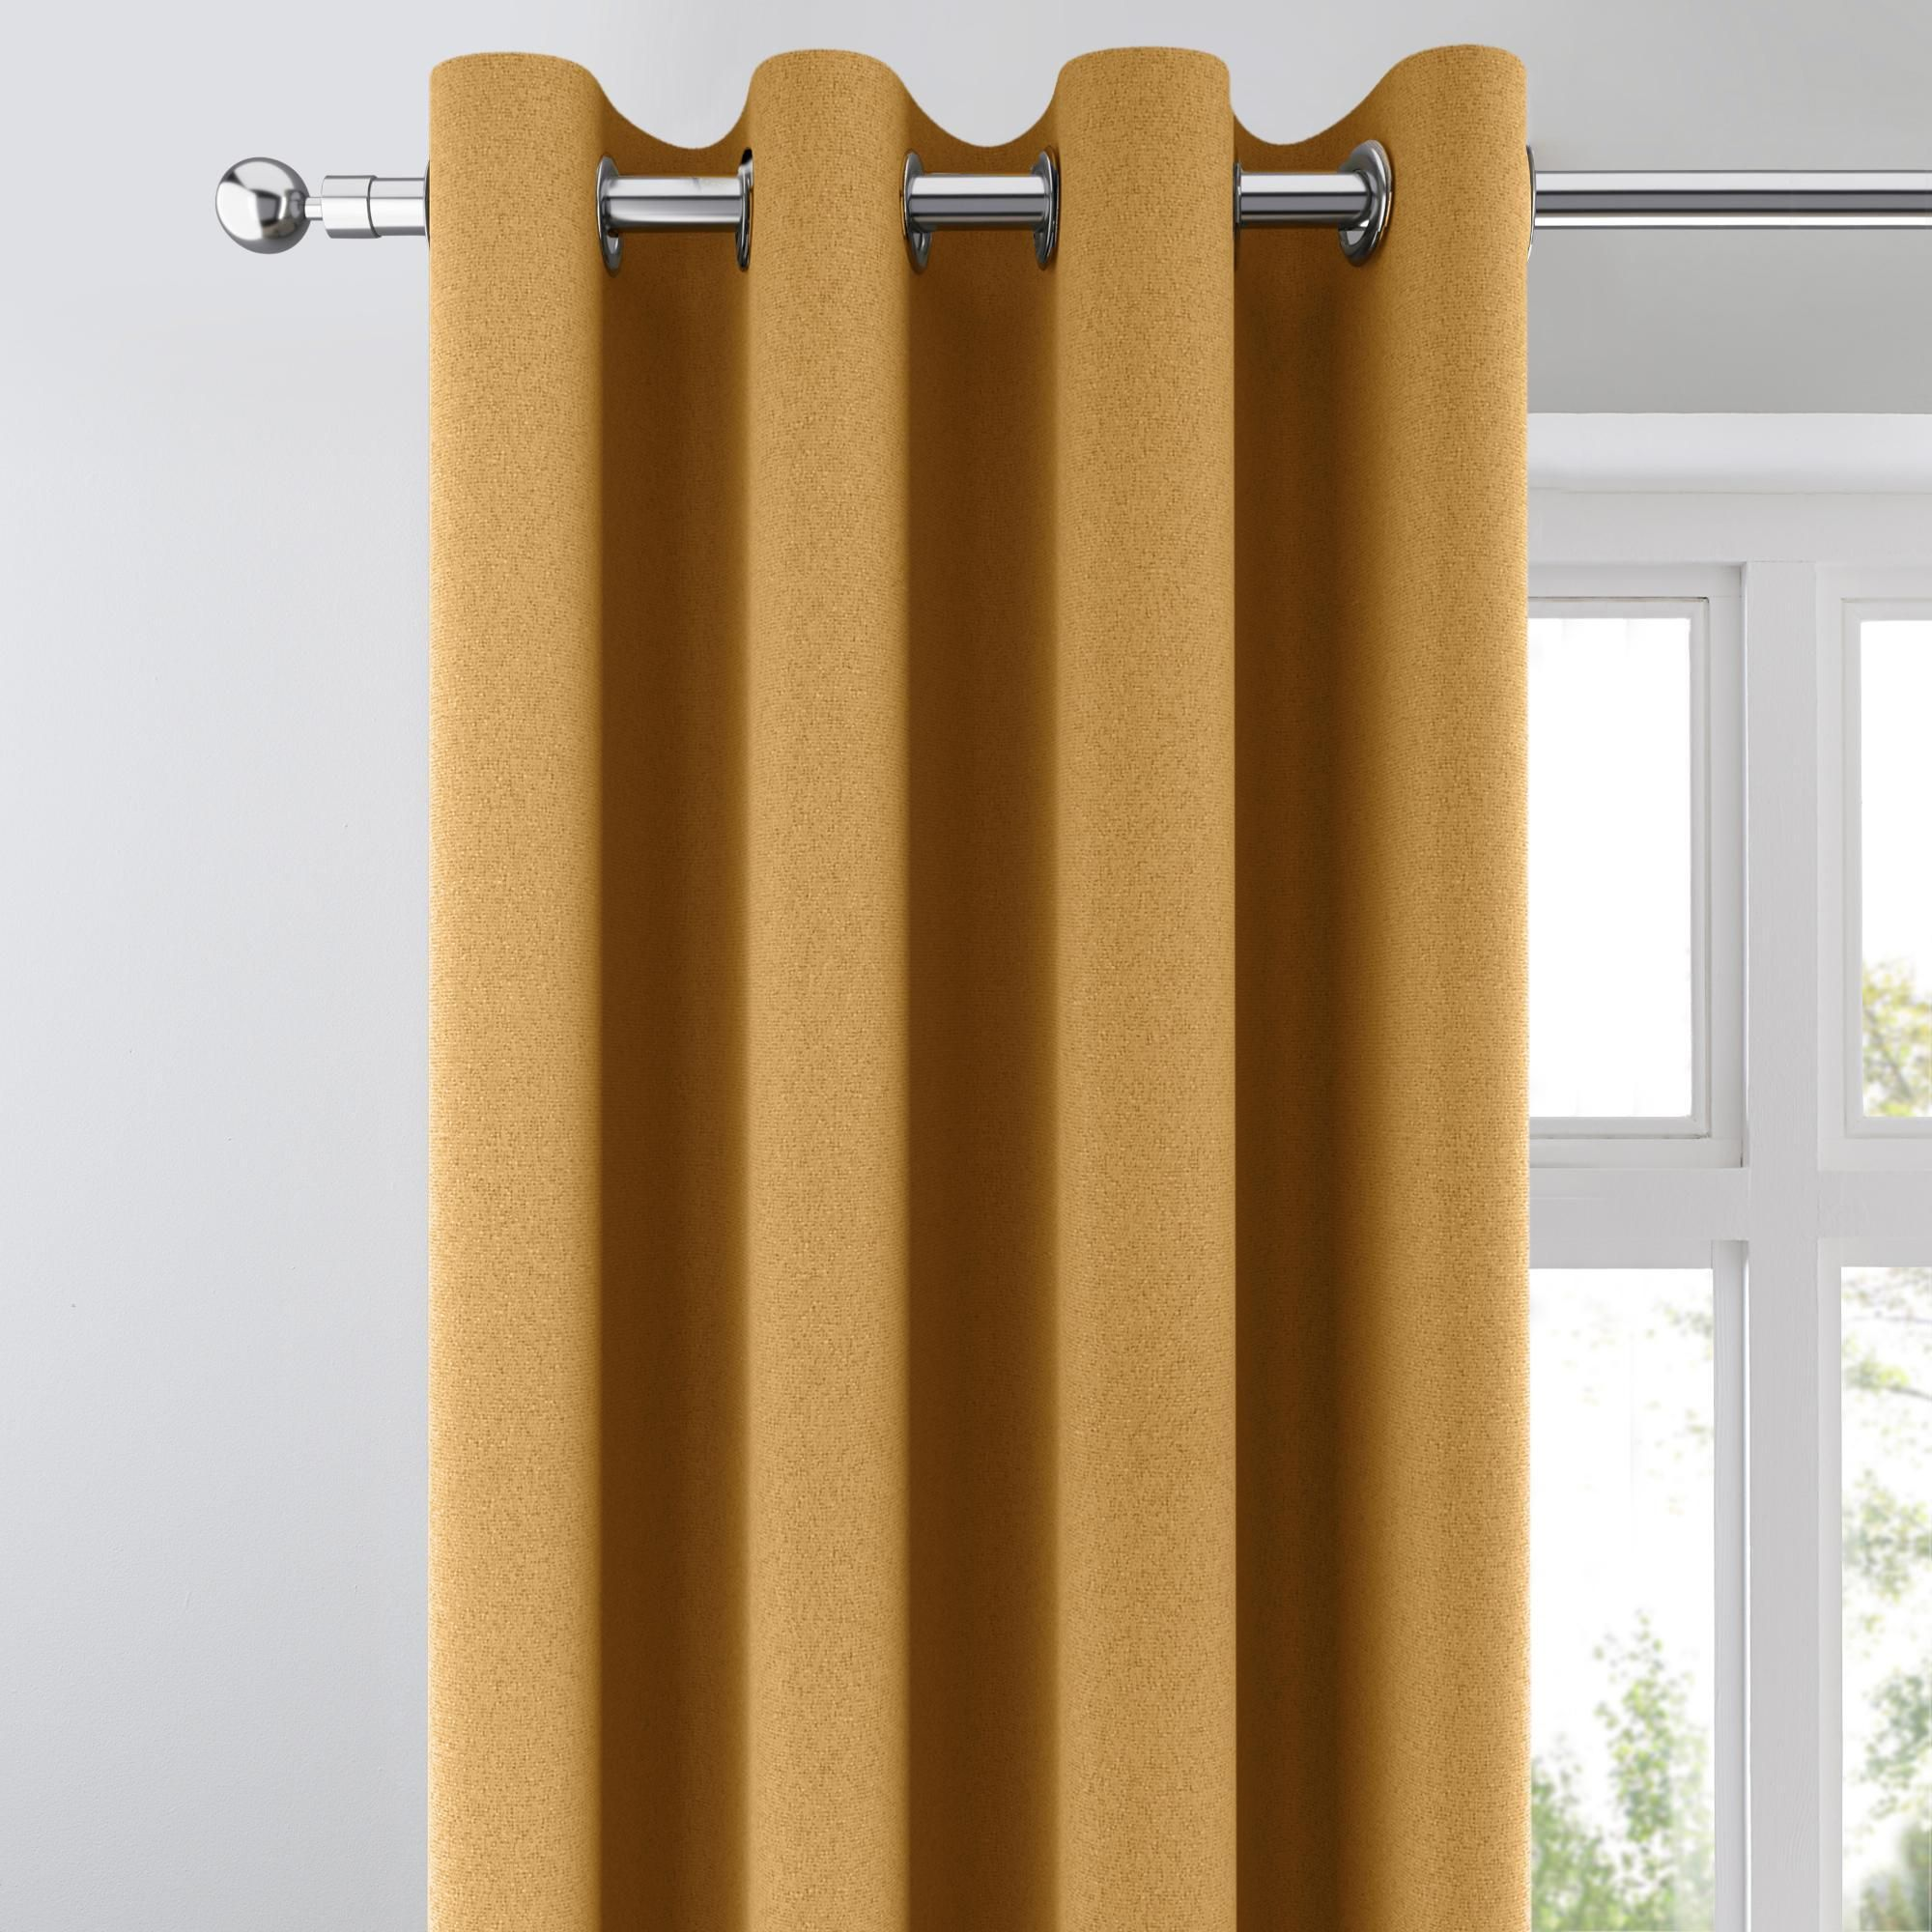 Chicago Old Gold Jacquard Blackout Eyelet Curtains In 2020